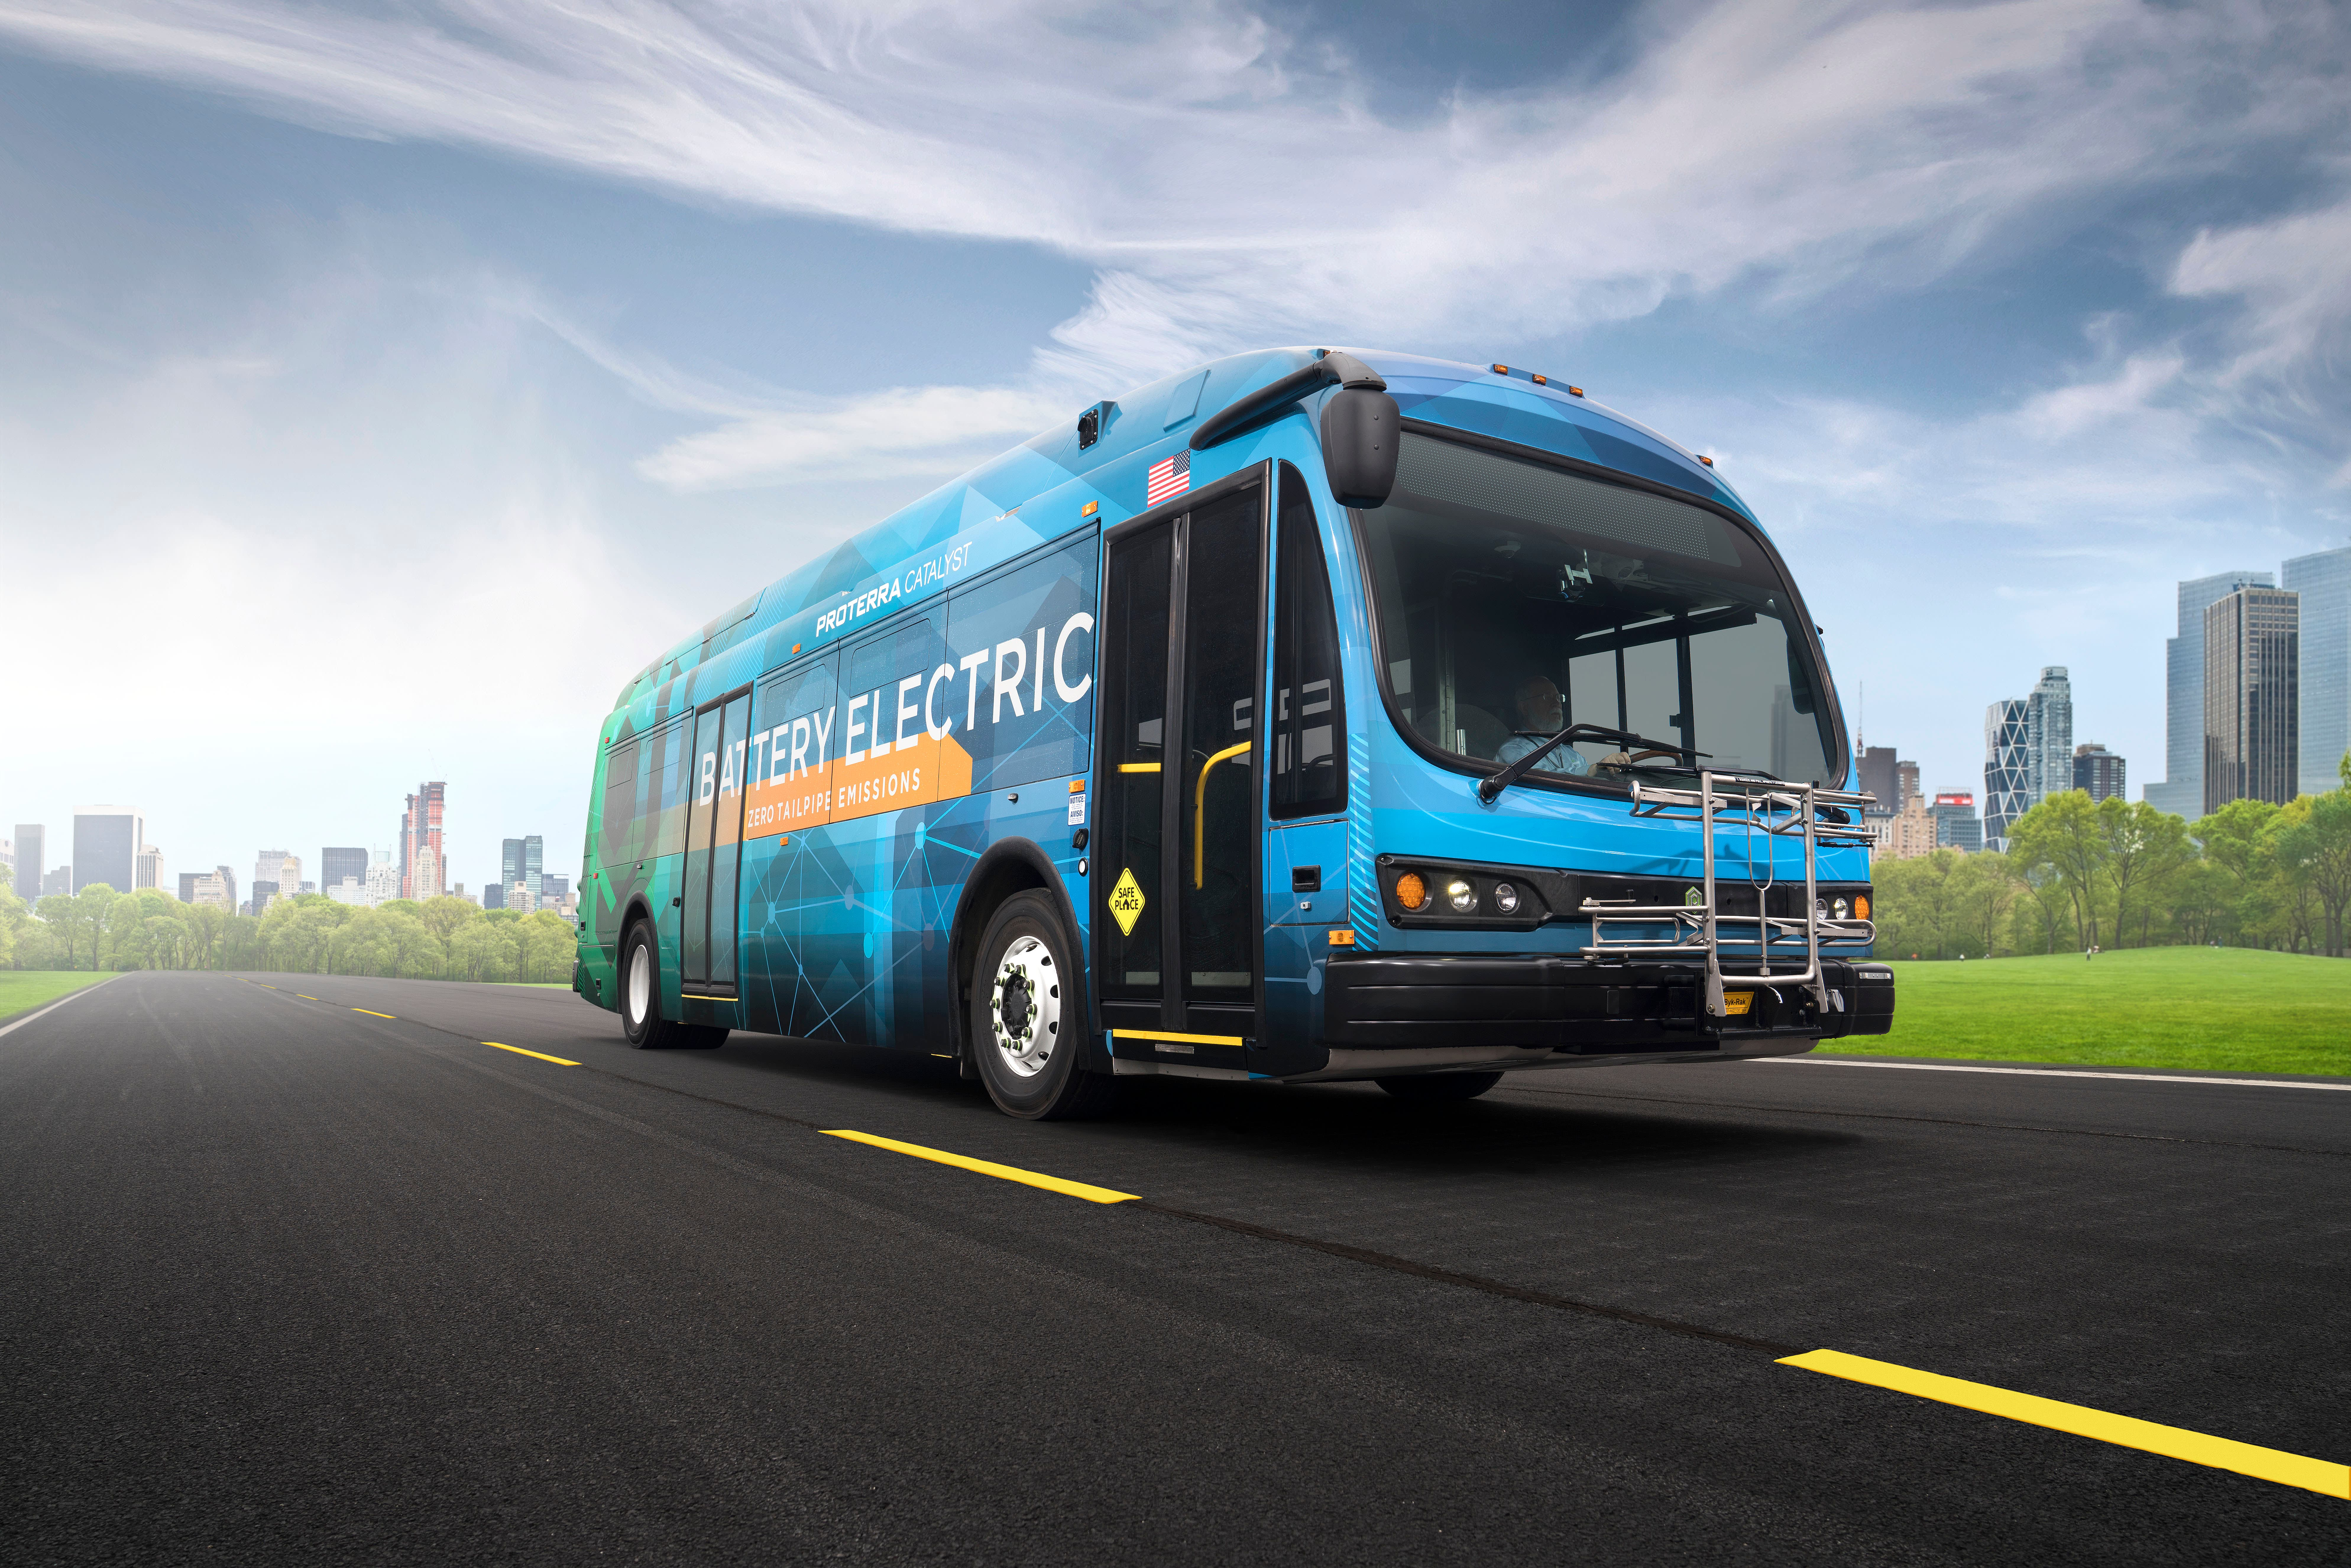 Proterra electric buses